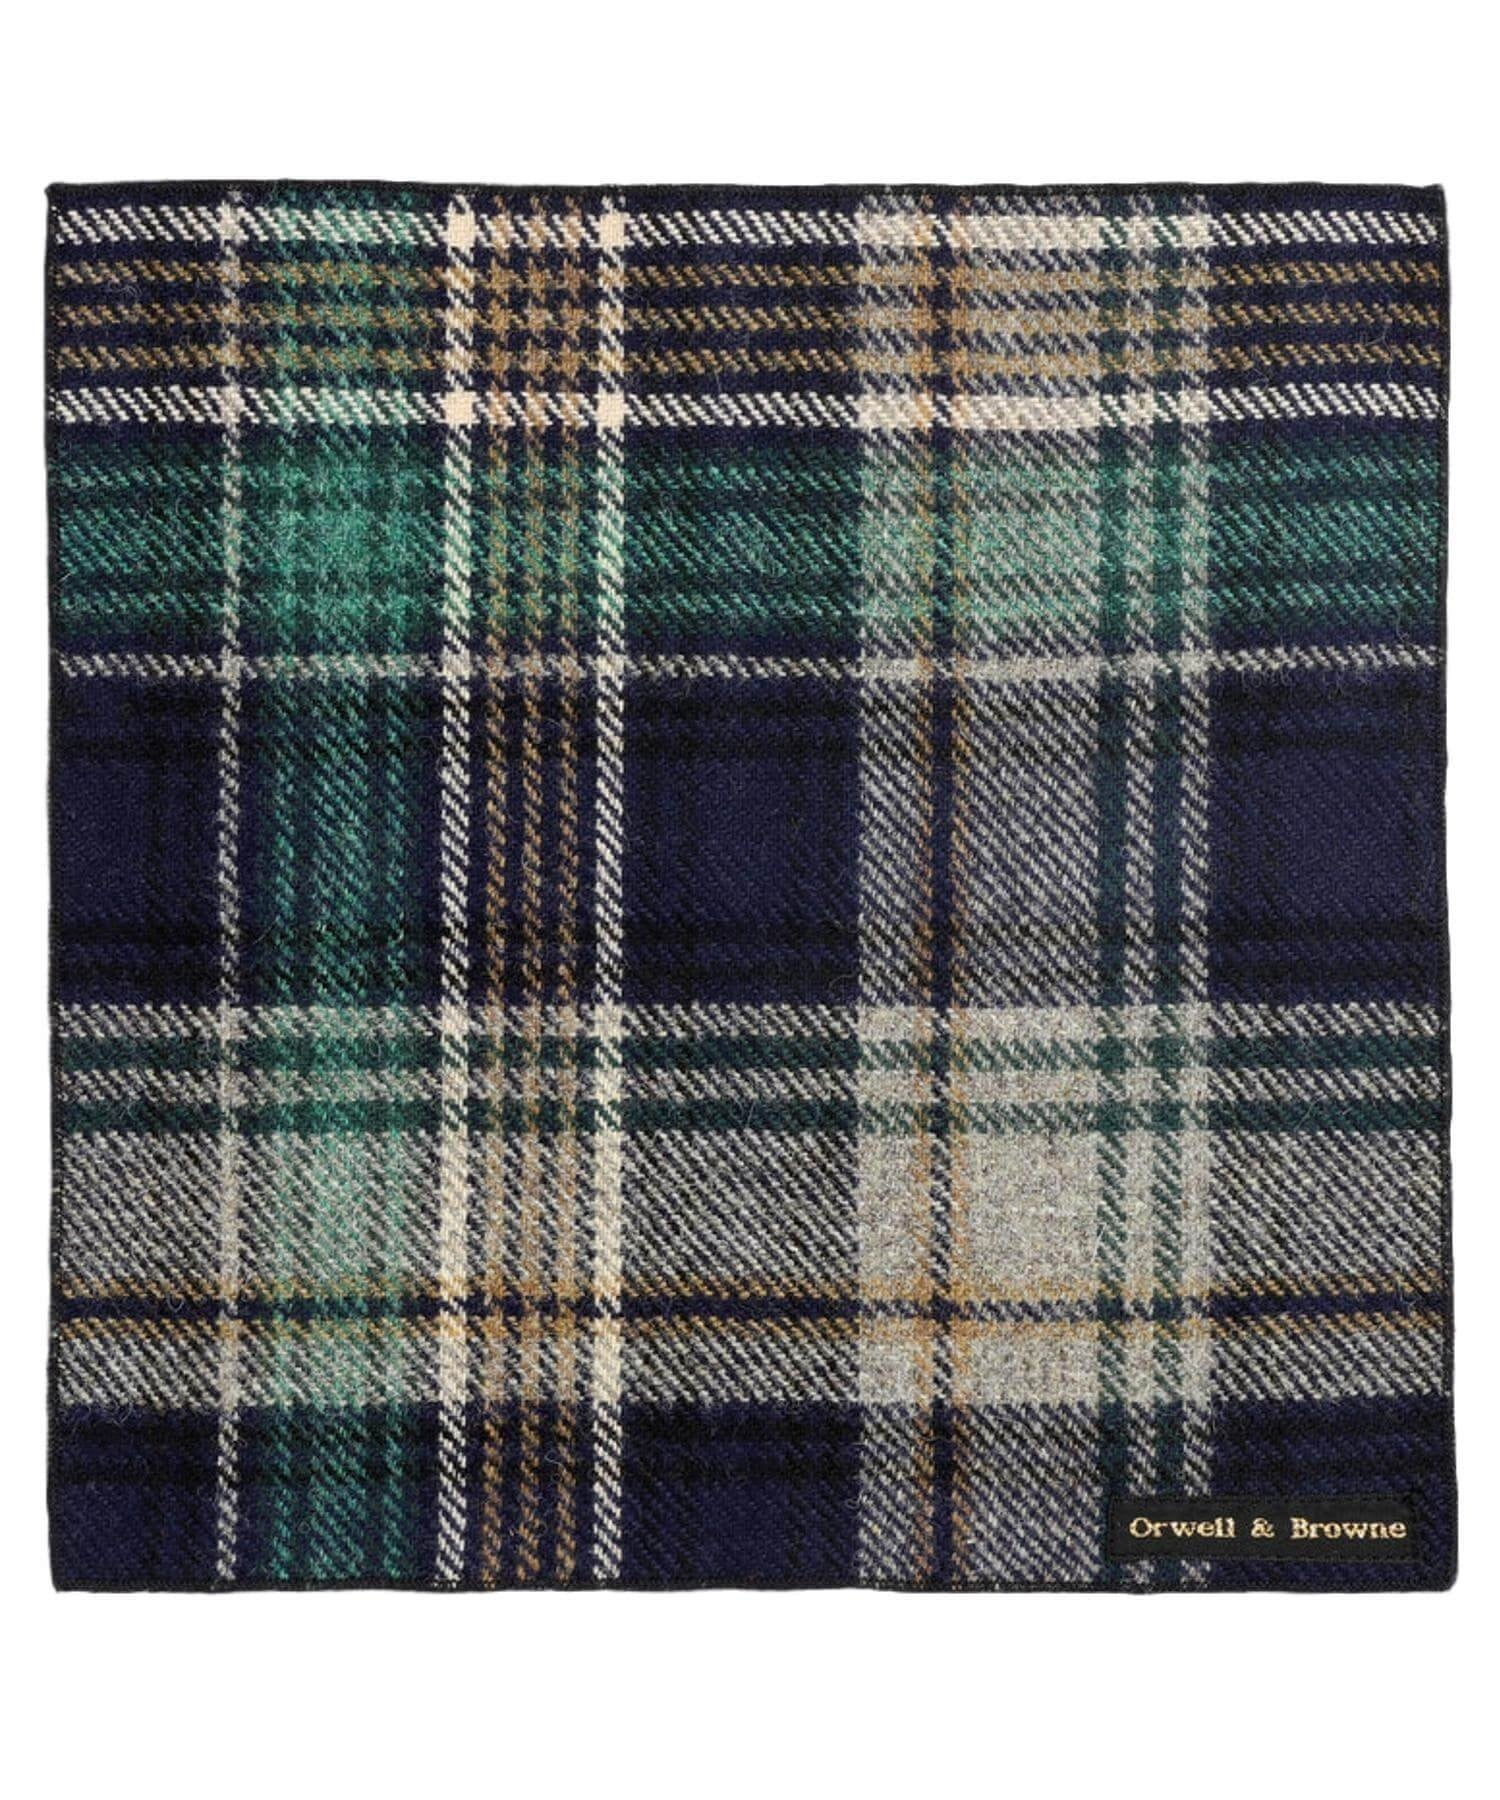 Donegal Tweed Pocket Square - Harlequin - [Orwell & Browne] - Mens Accessories - Irish Gifts